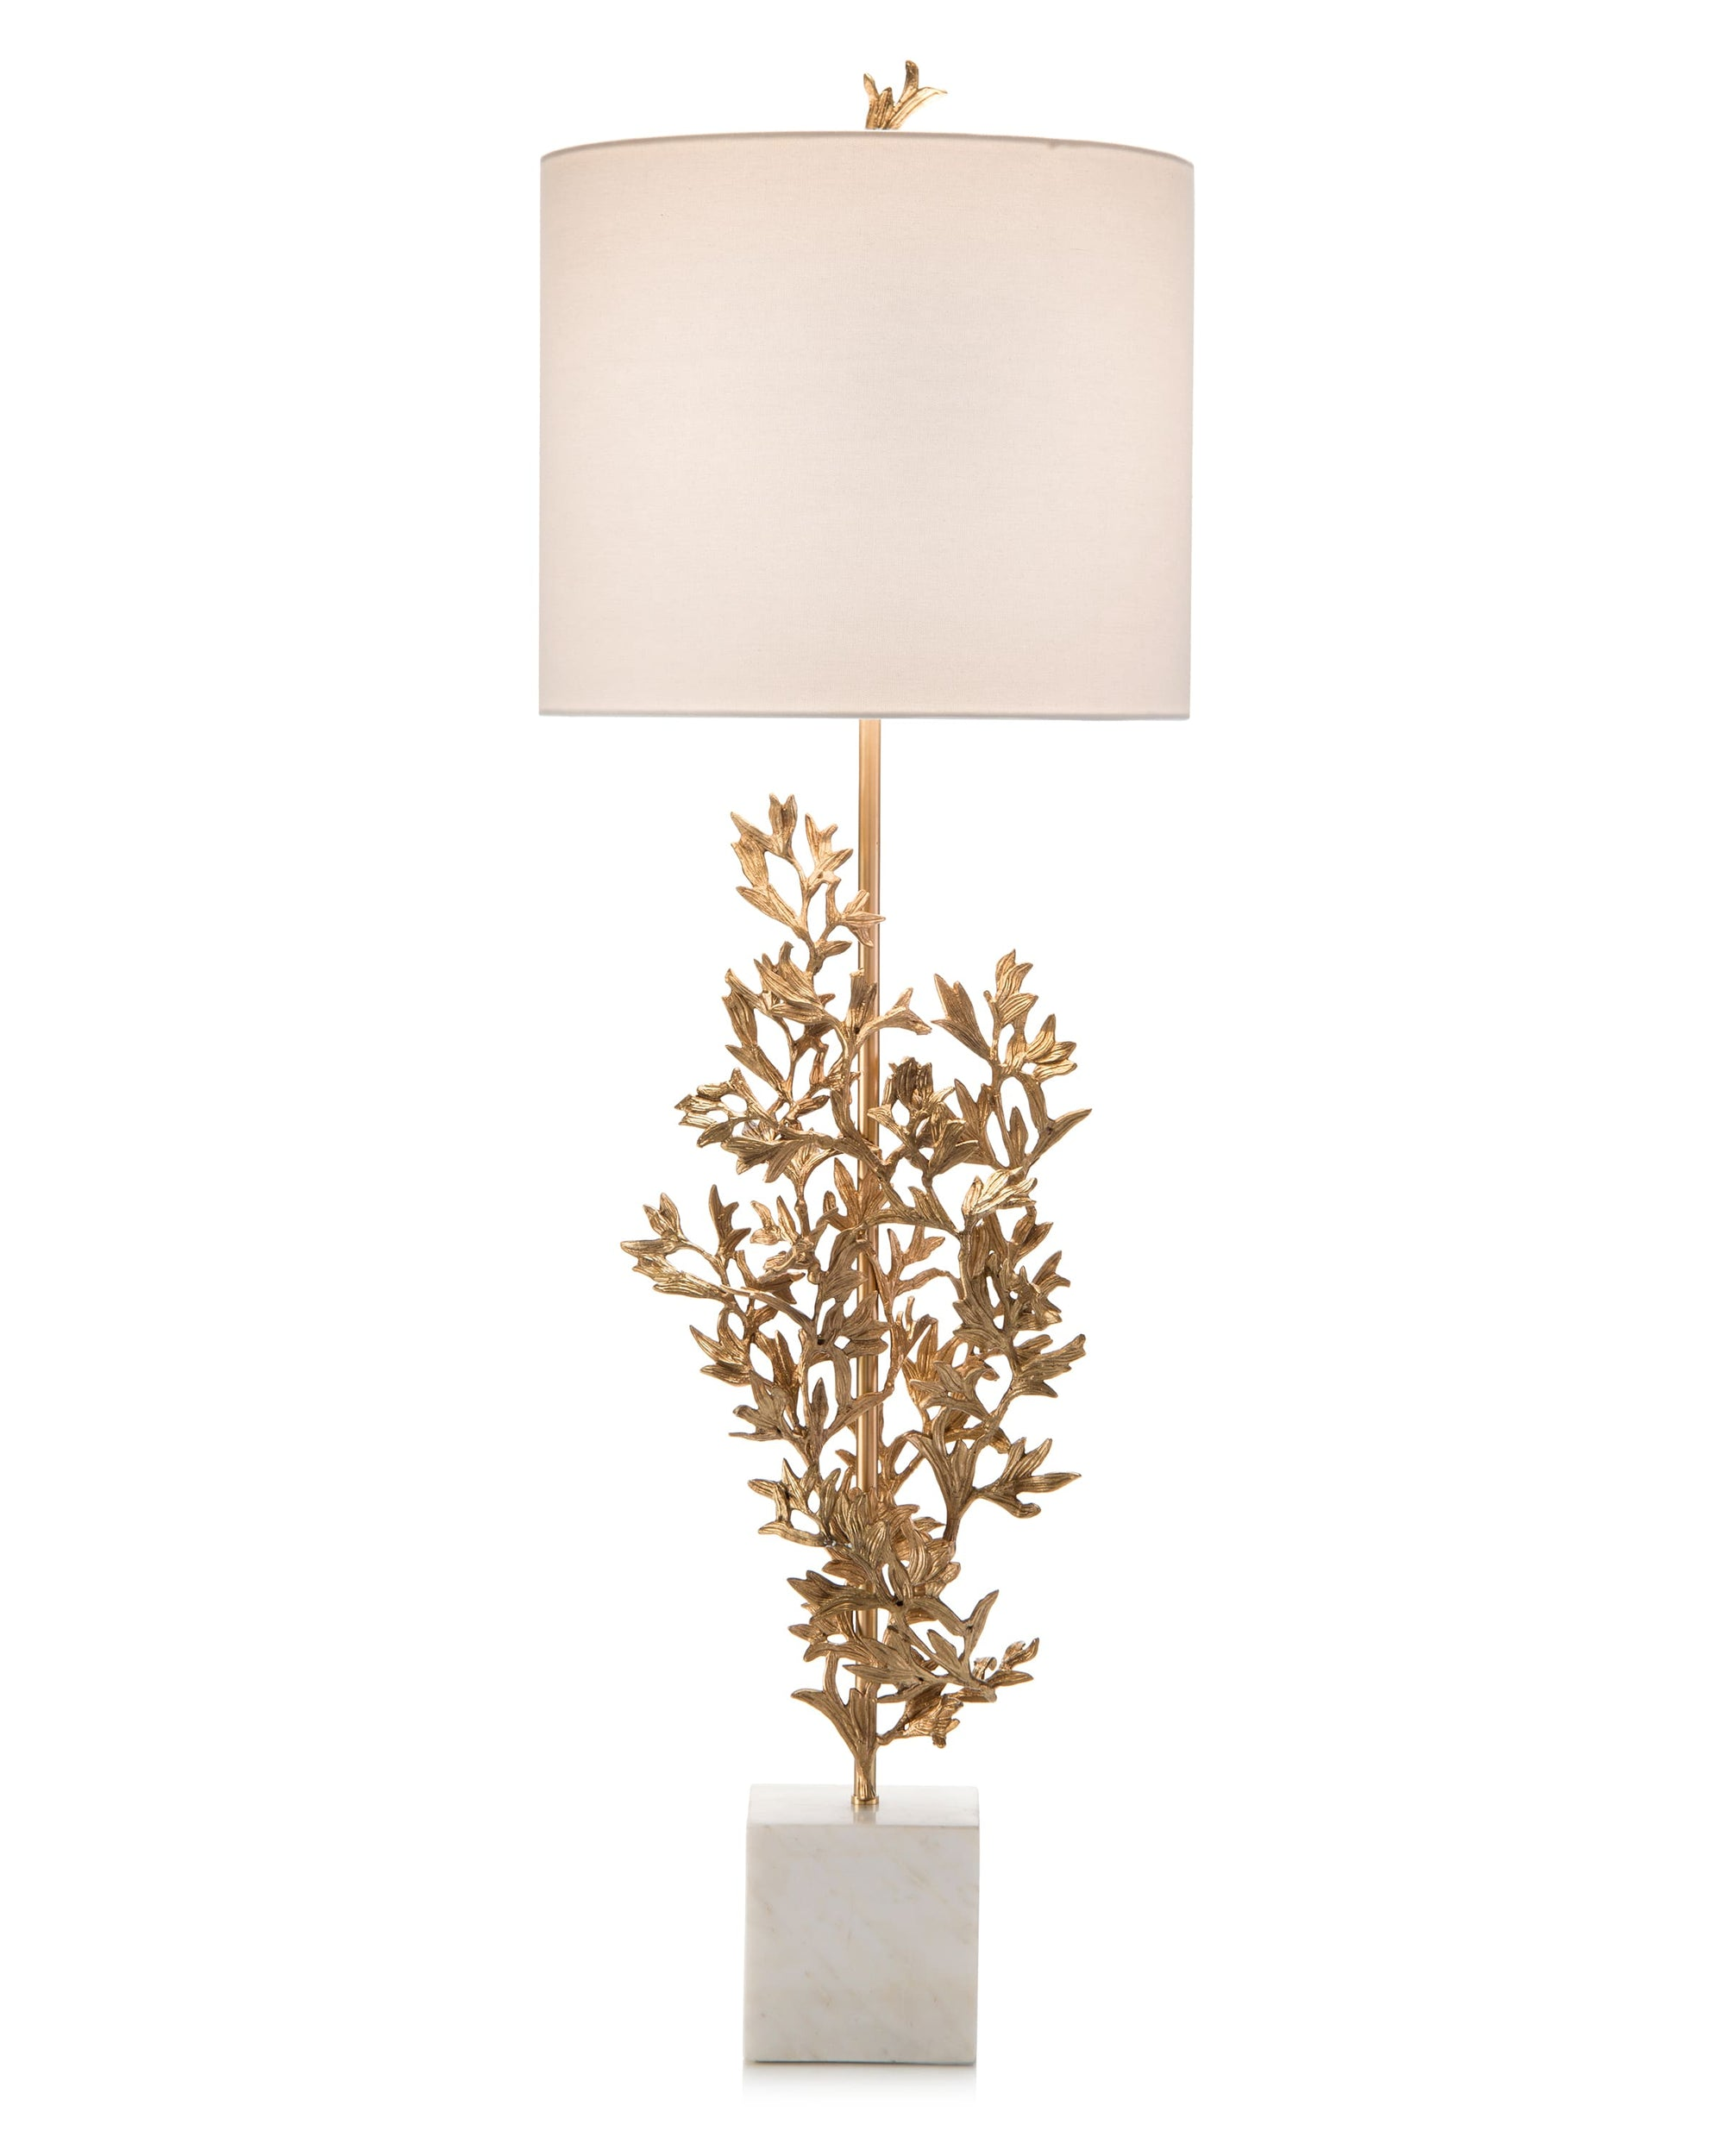 Brass sculpted botanical lamp from John-Richard